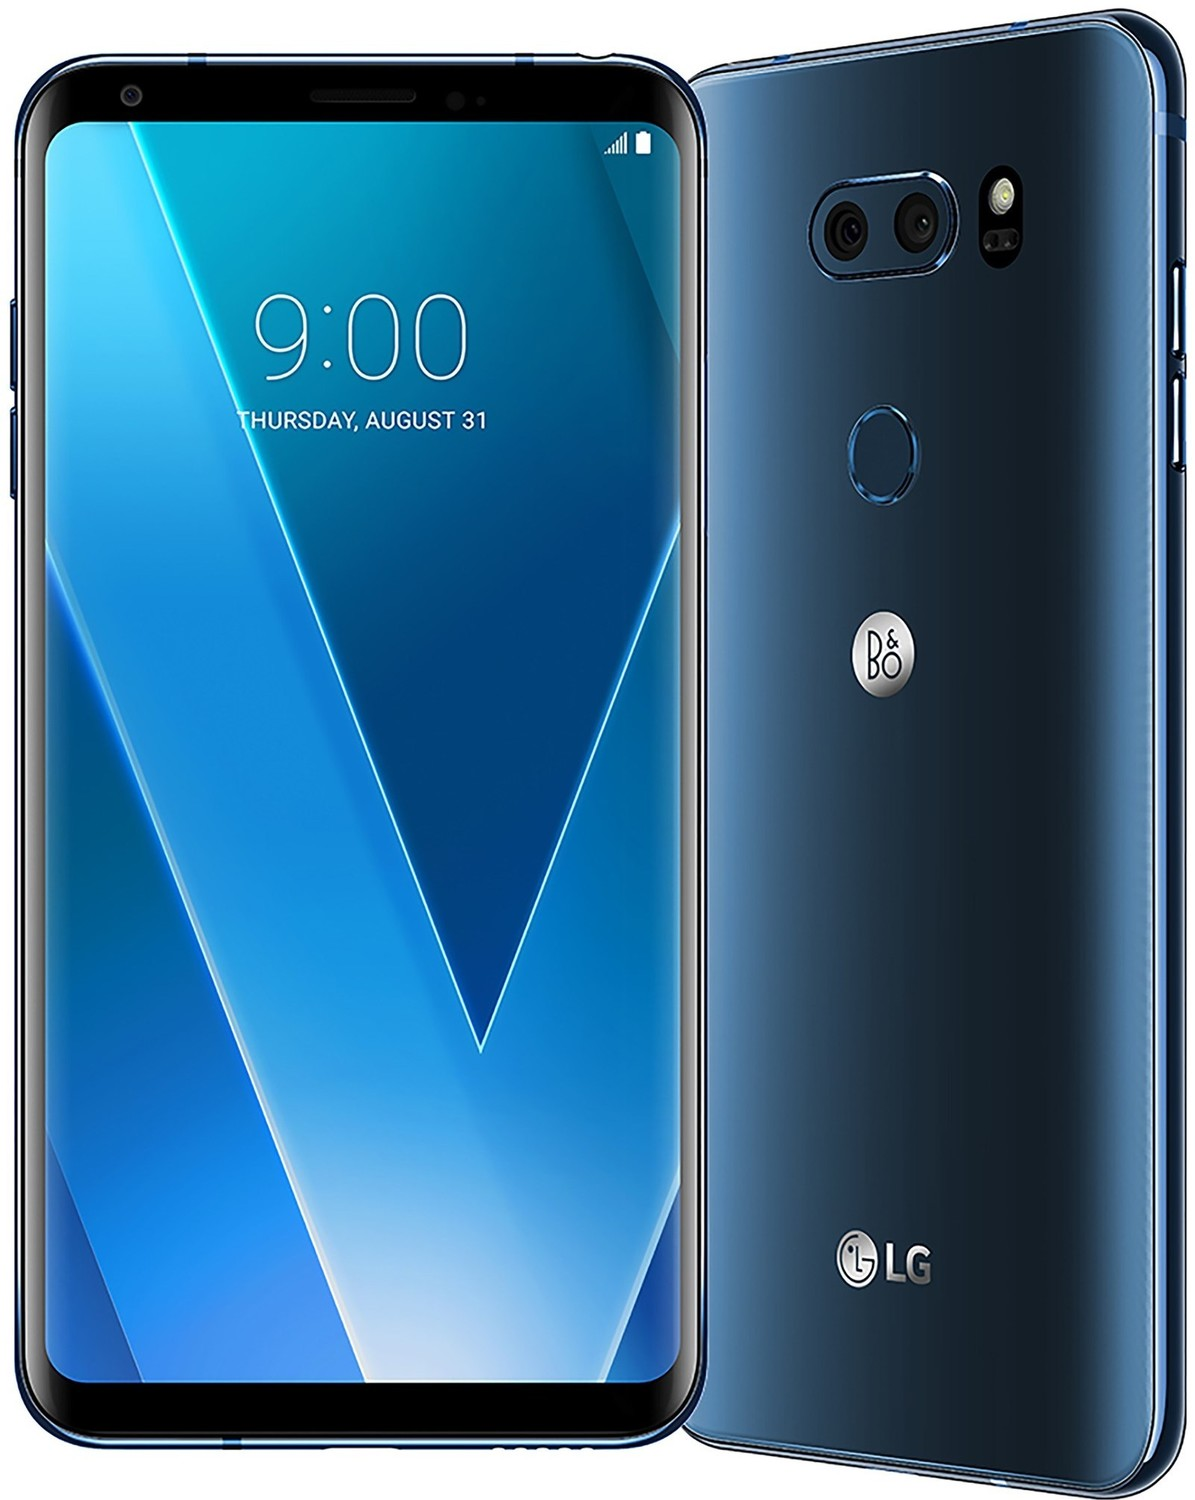 LG V30 64GB - Specs and Price - Phonegg